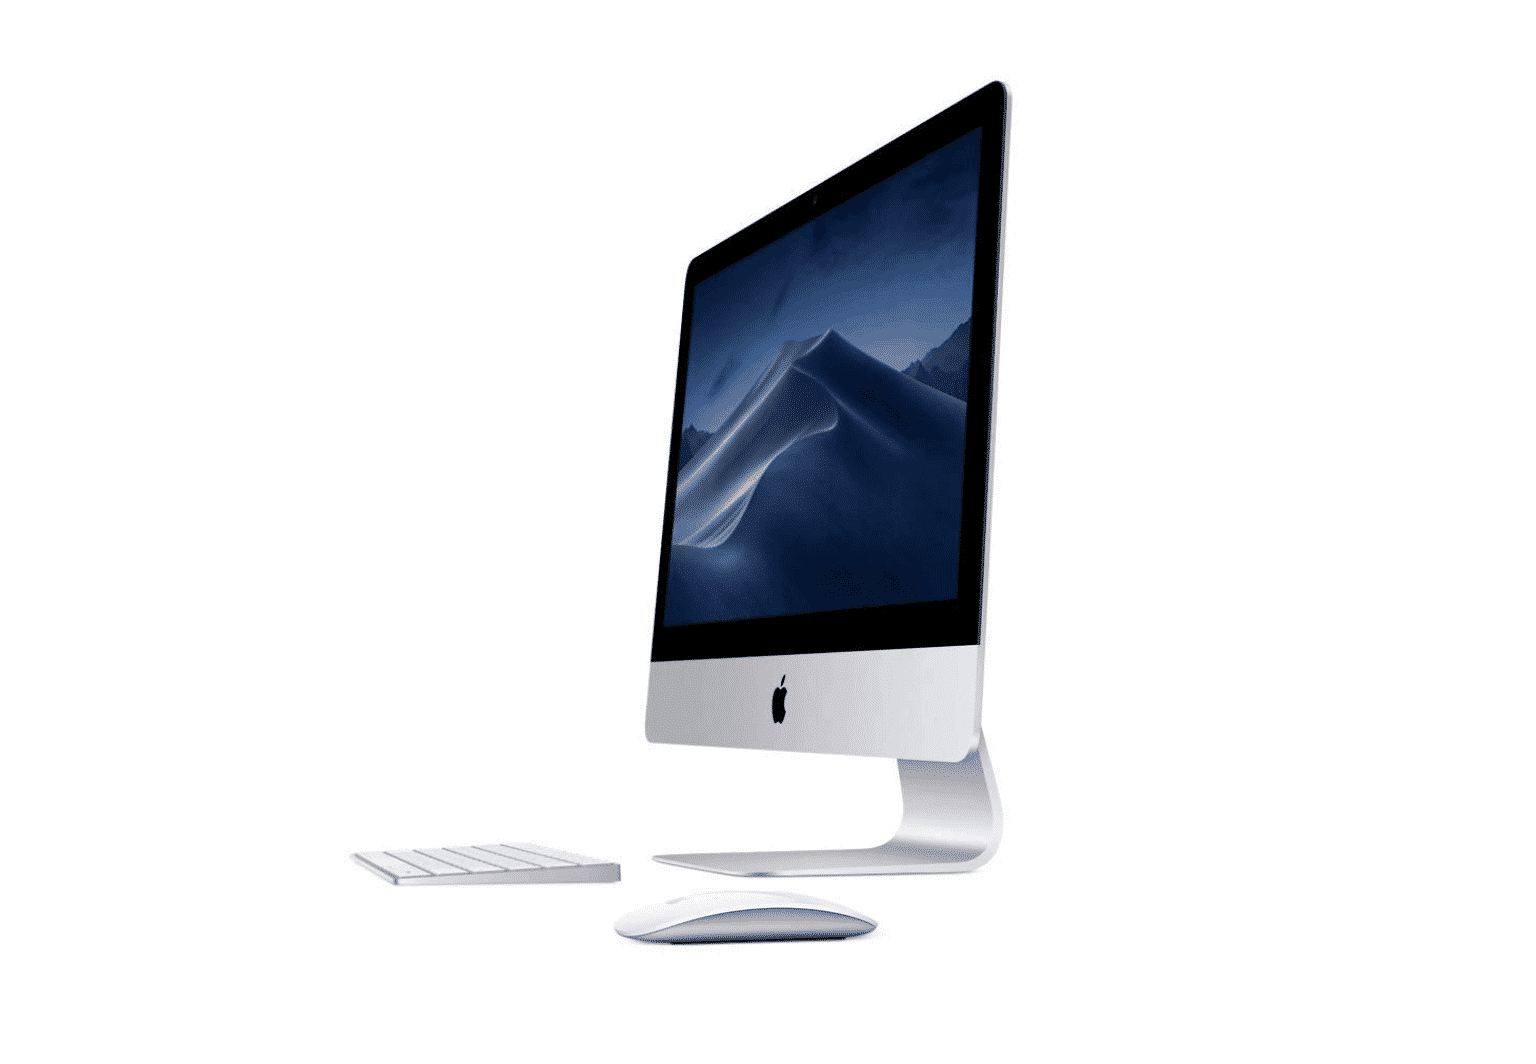 Get The 21.5 inch 4K Retina iMac for Just $1,039